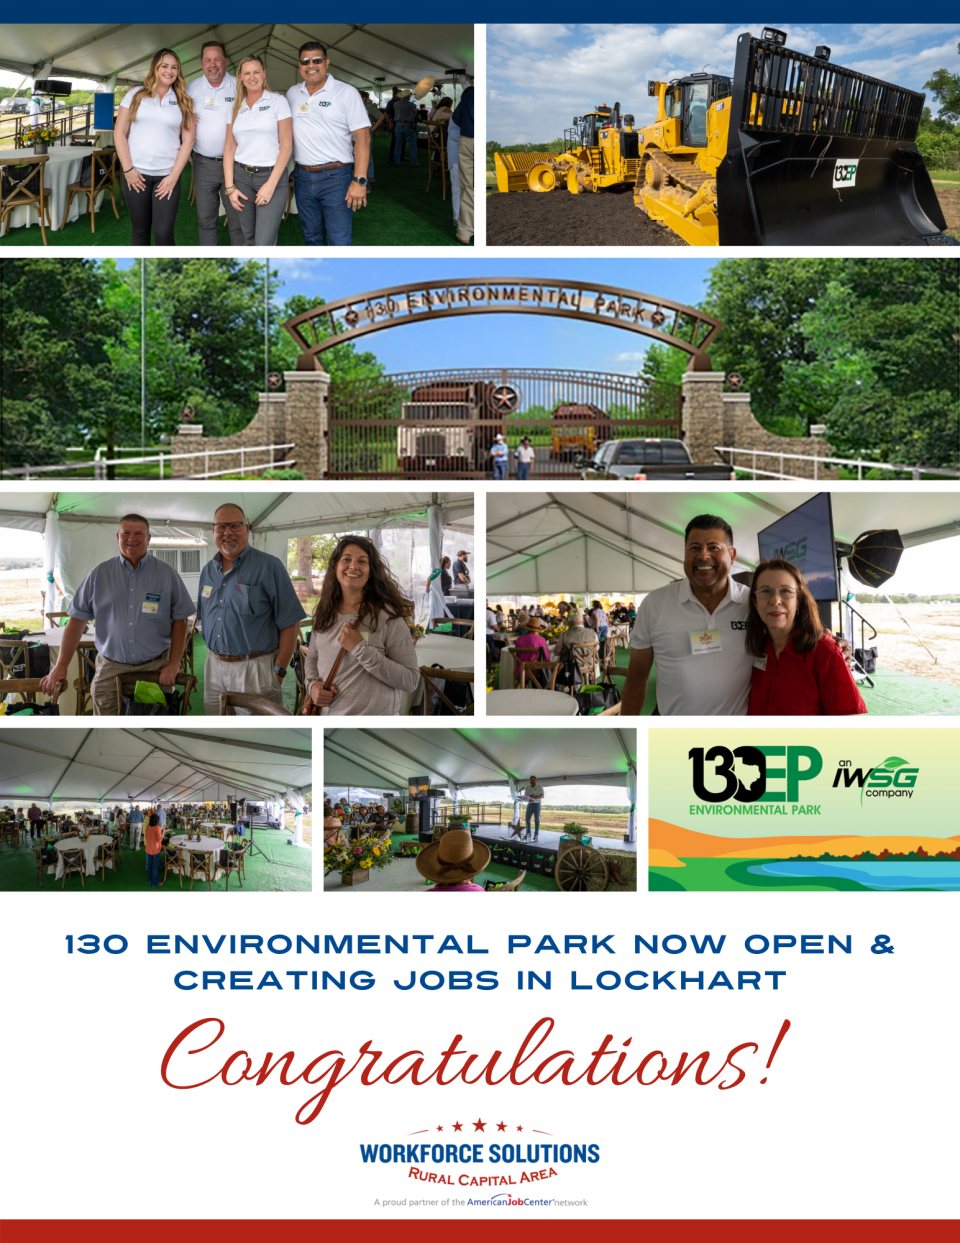 WSRCA Team Takes Part in Grand Opening of State-of-the-Art 130 Environmental Park in Lockhart